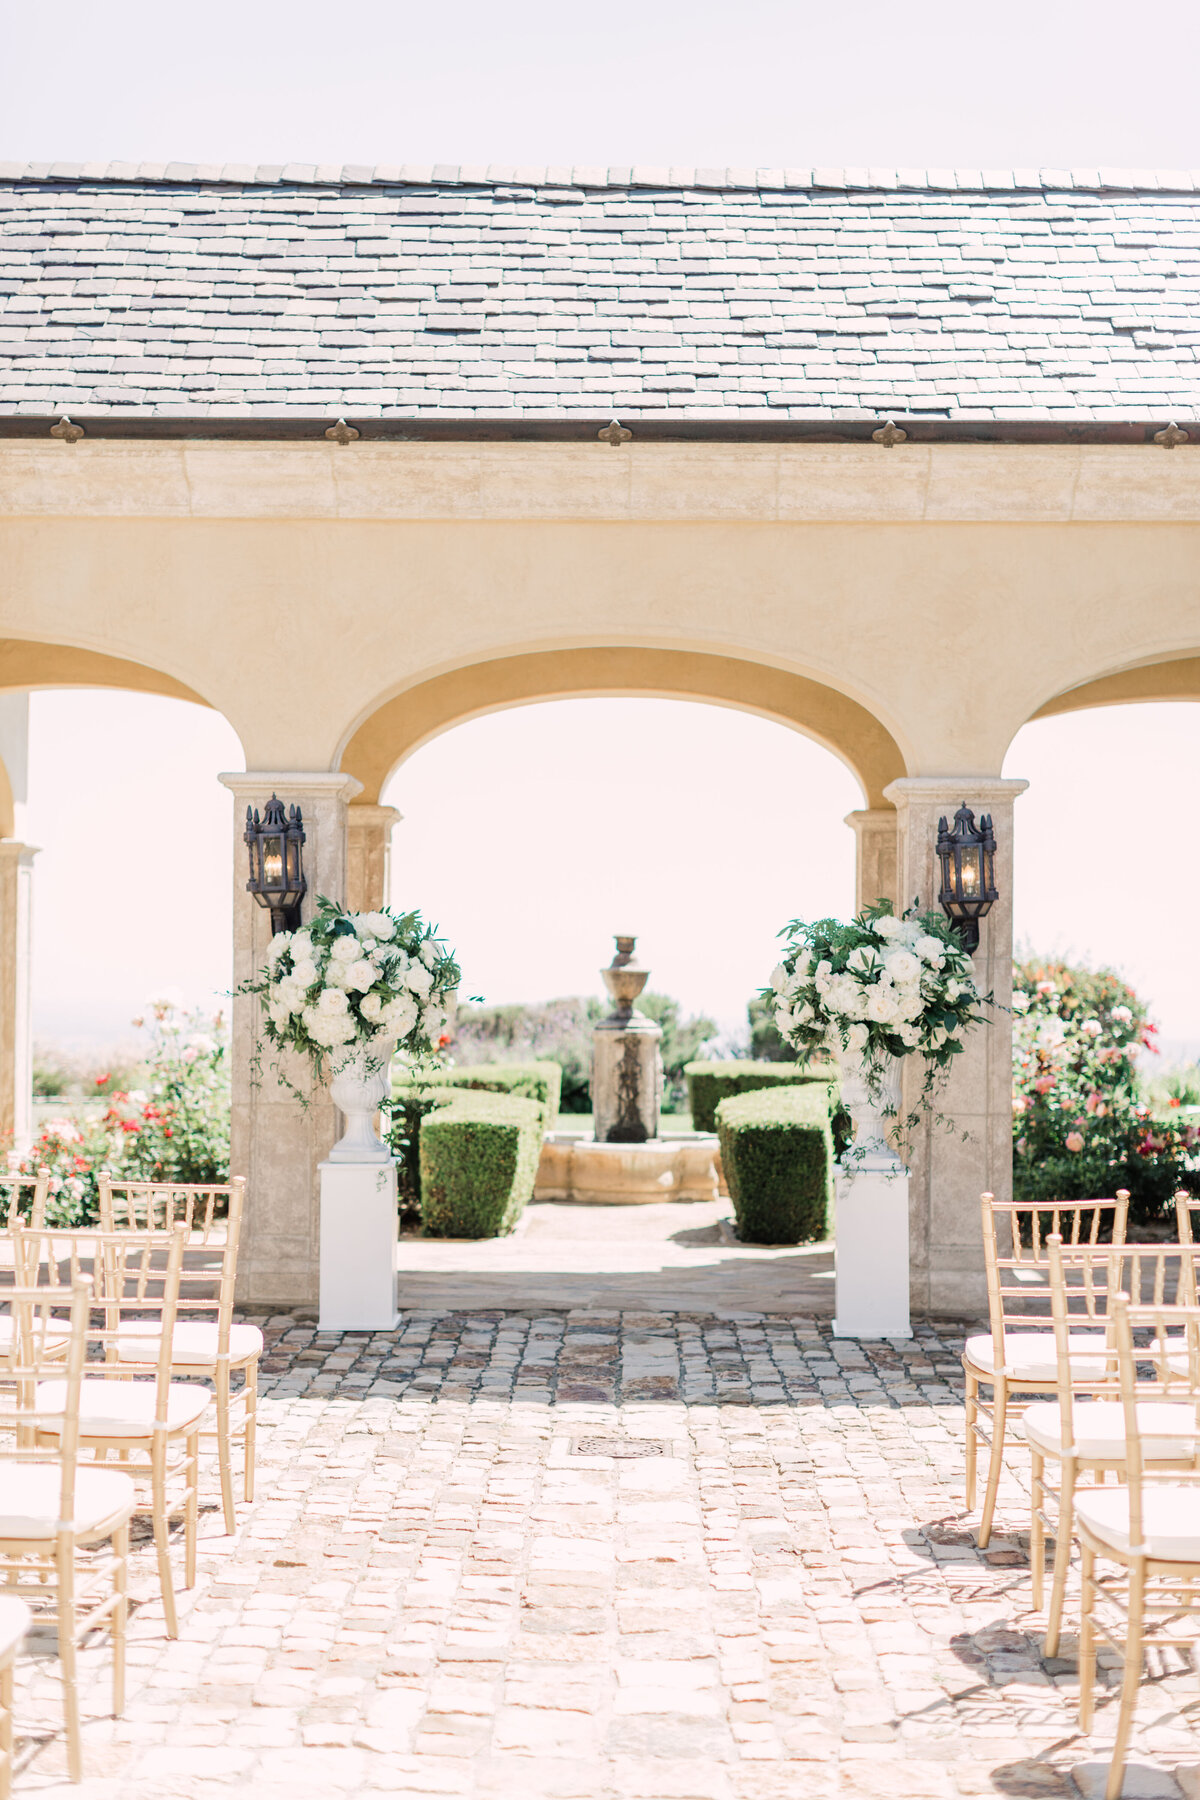 269_Ekpre_Olomu_Hidden_Castle_Estate_Wedding_Rancho_Santa_Fe_California_Devon_Donnahoo_Photography